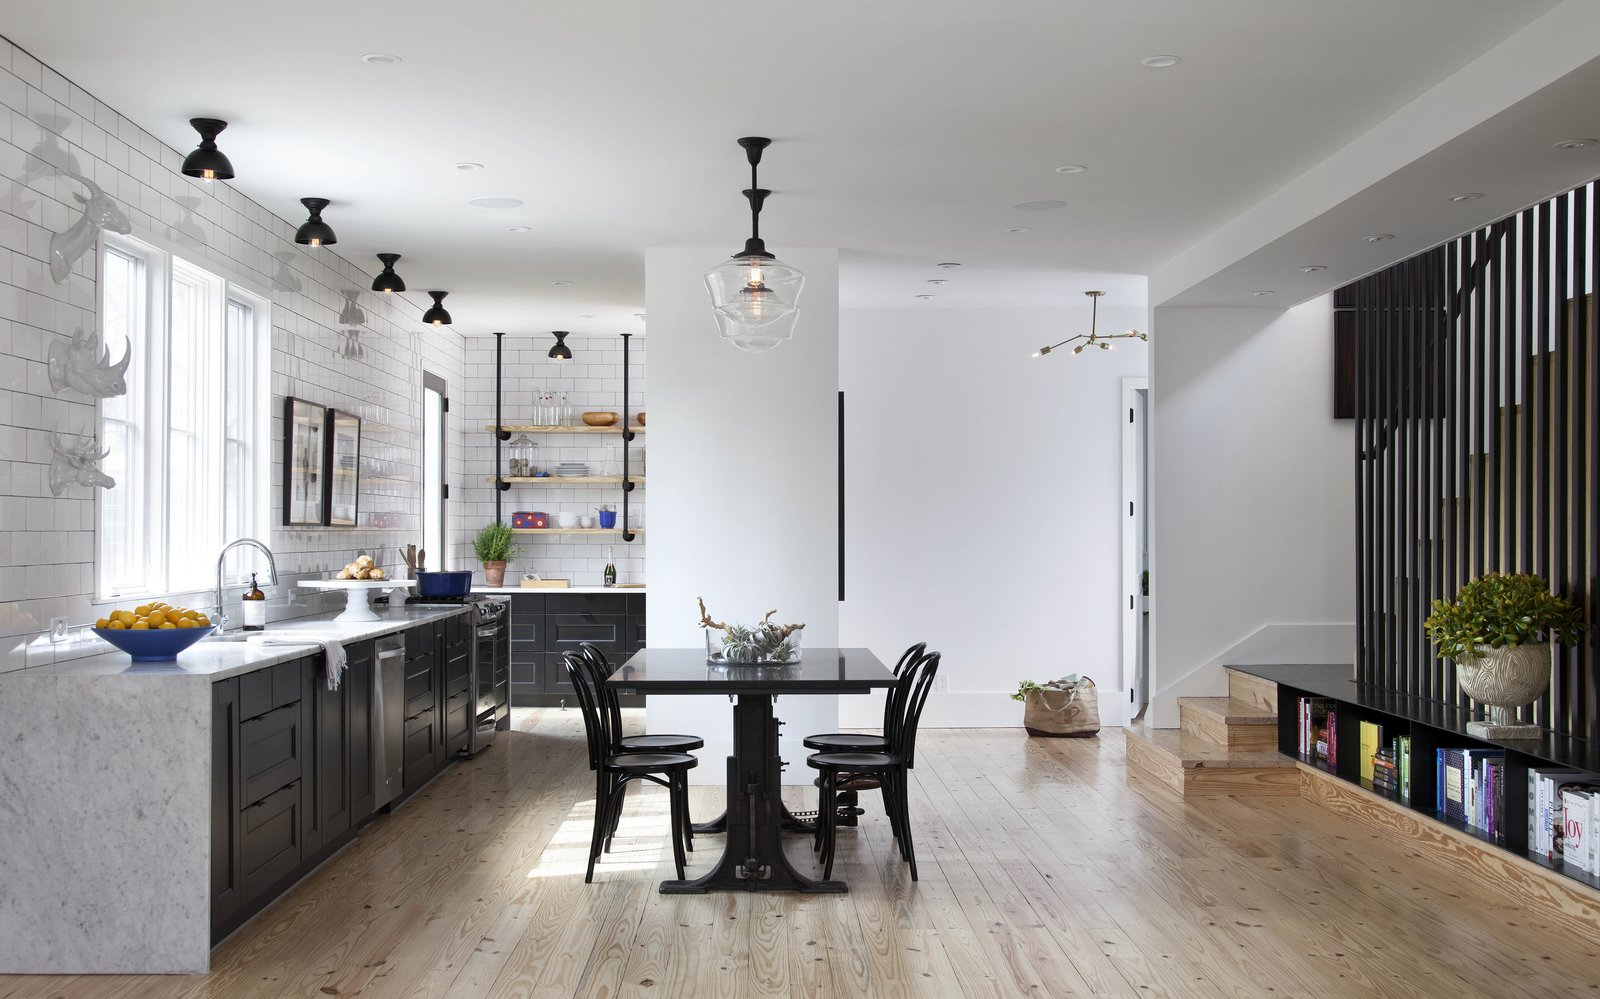 The kitchen and adjoined dining space have a light, open feel, as does the rest of the home. Complementary design elements, like the low-slung steel bookcase next to the stairs, which Flournoy's partner organized according to color, reappear throughout the house. Pops of color add an appealing break from the largely monochromatic palette, and reinforce the couple's design aesthetic. The Bistro chairs are from Crate and Barrel.